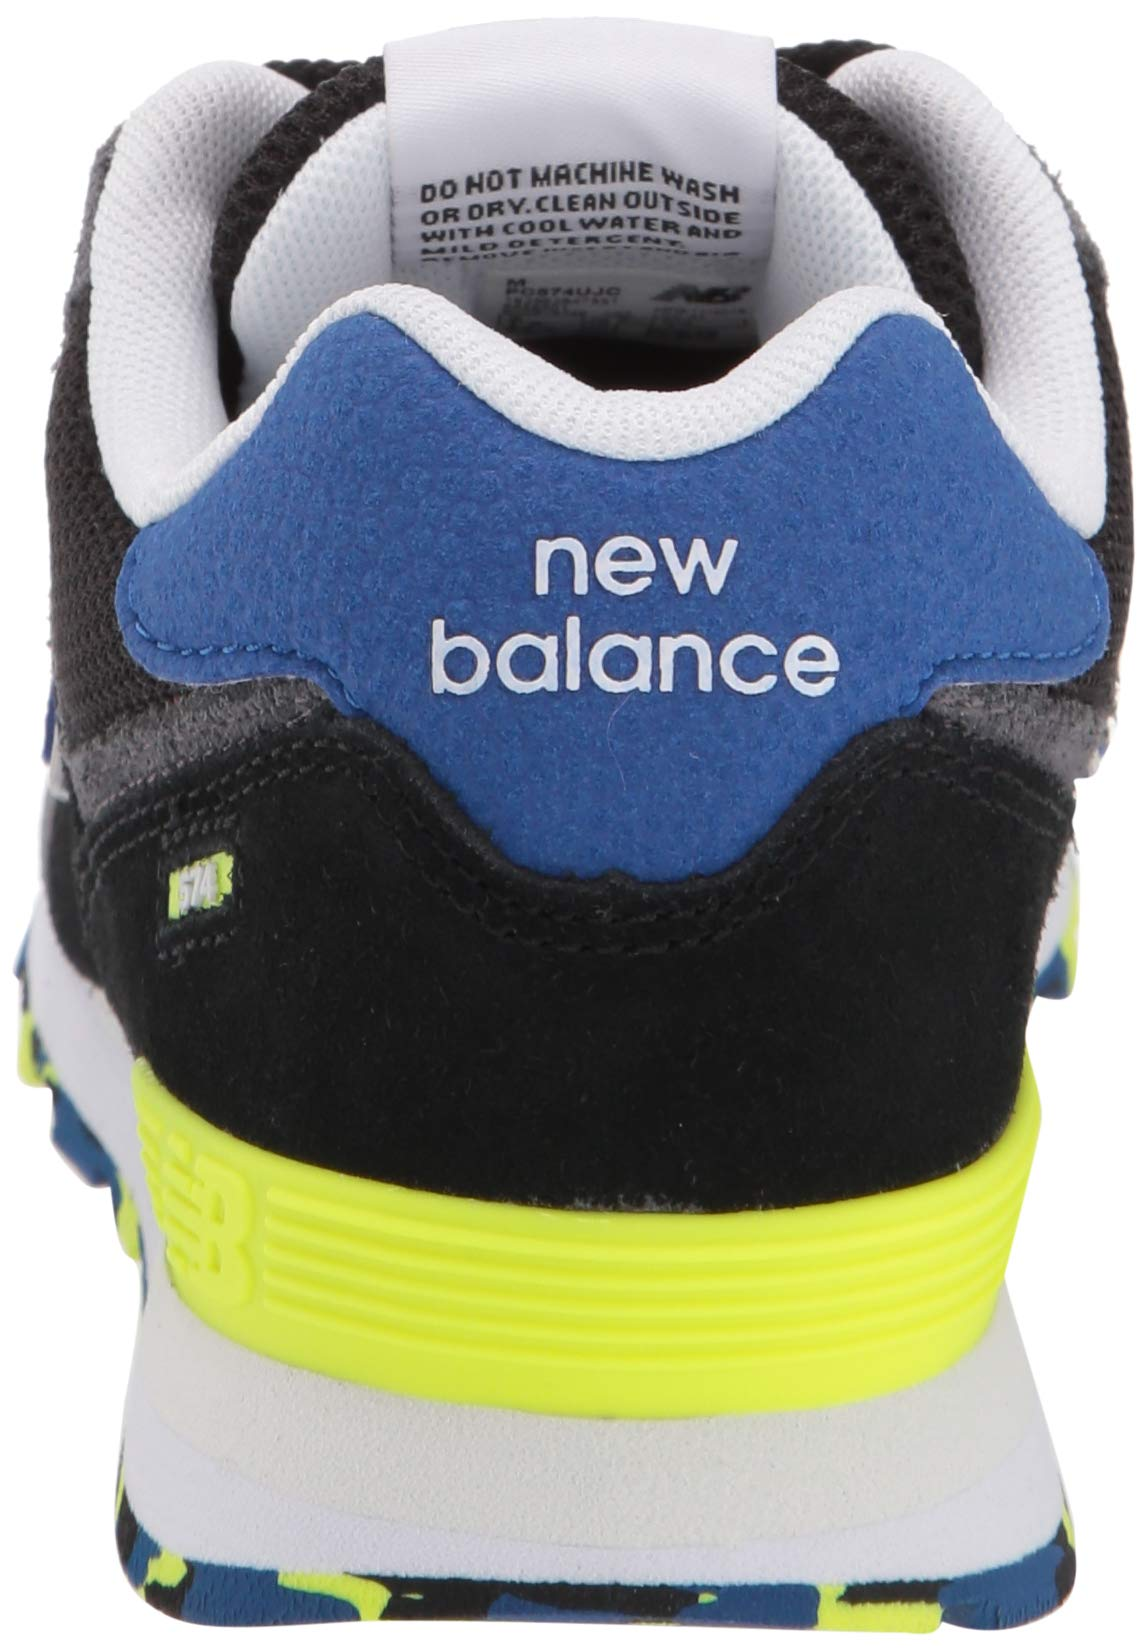 New Balance Boys' Iconic 574 Sneaker Black/Royal Blue 4.5 M US Big Kid by New Balance (Image #2)